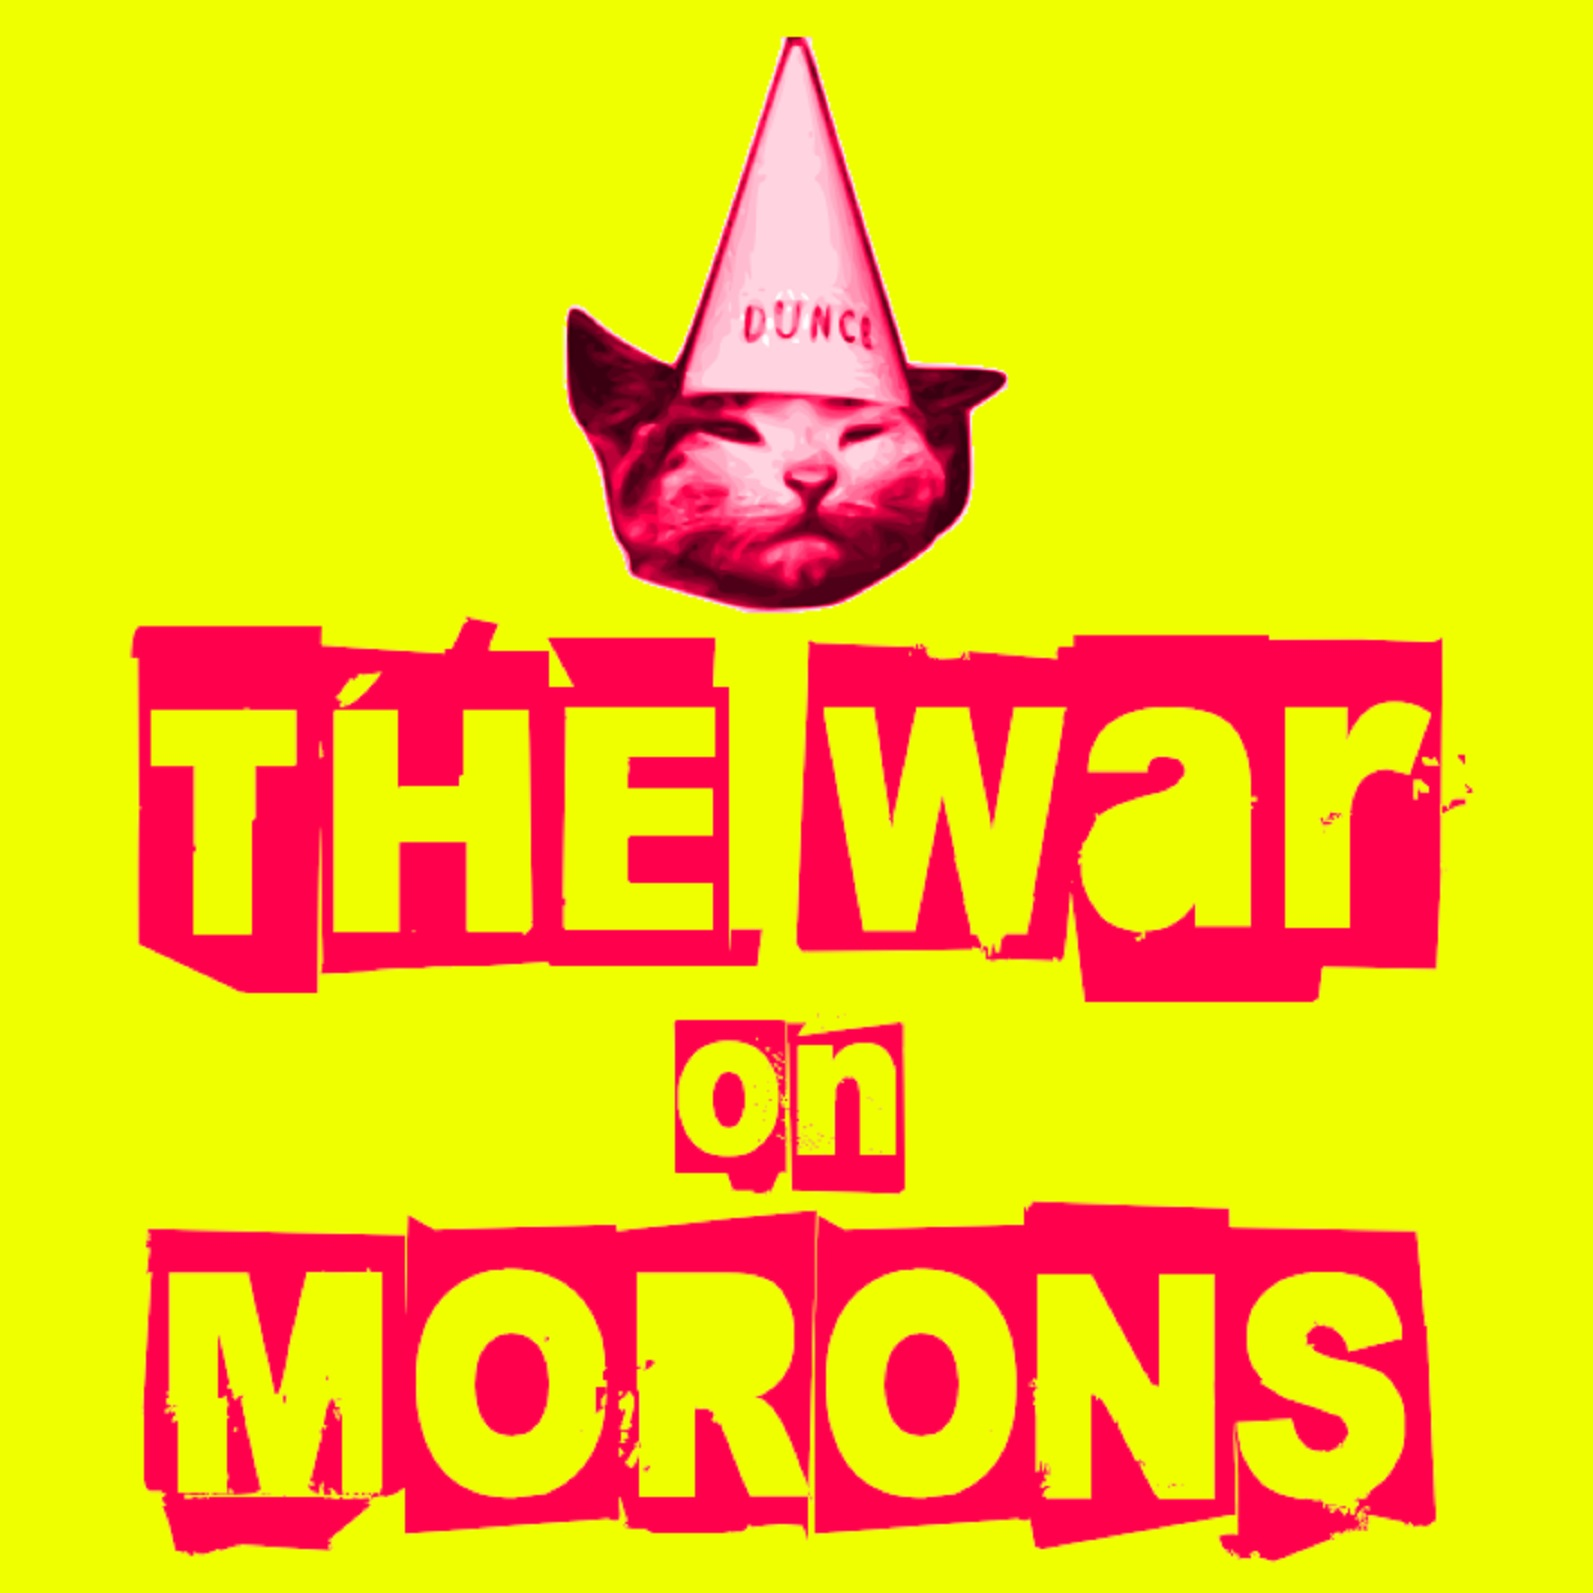 """Fresh update on """"santa claus"""" discussed on The War on Morons"""